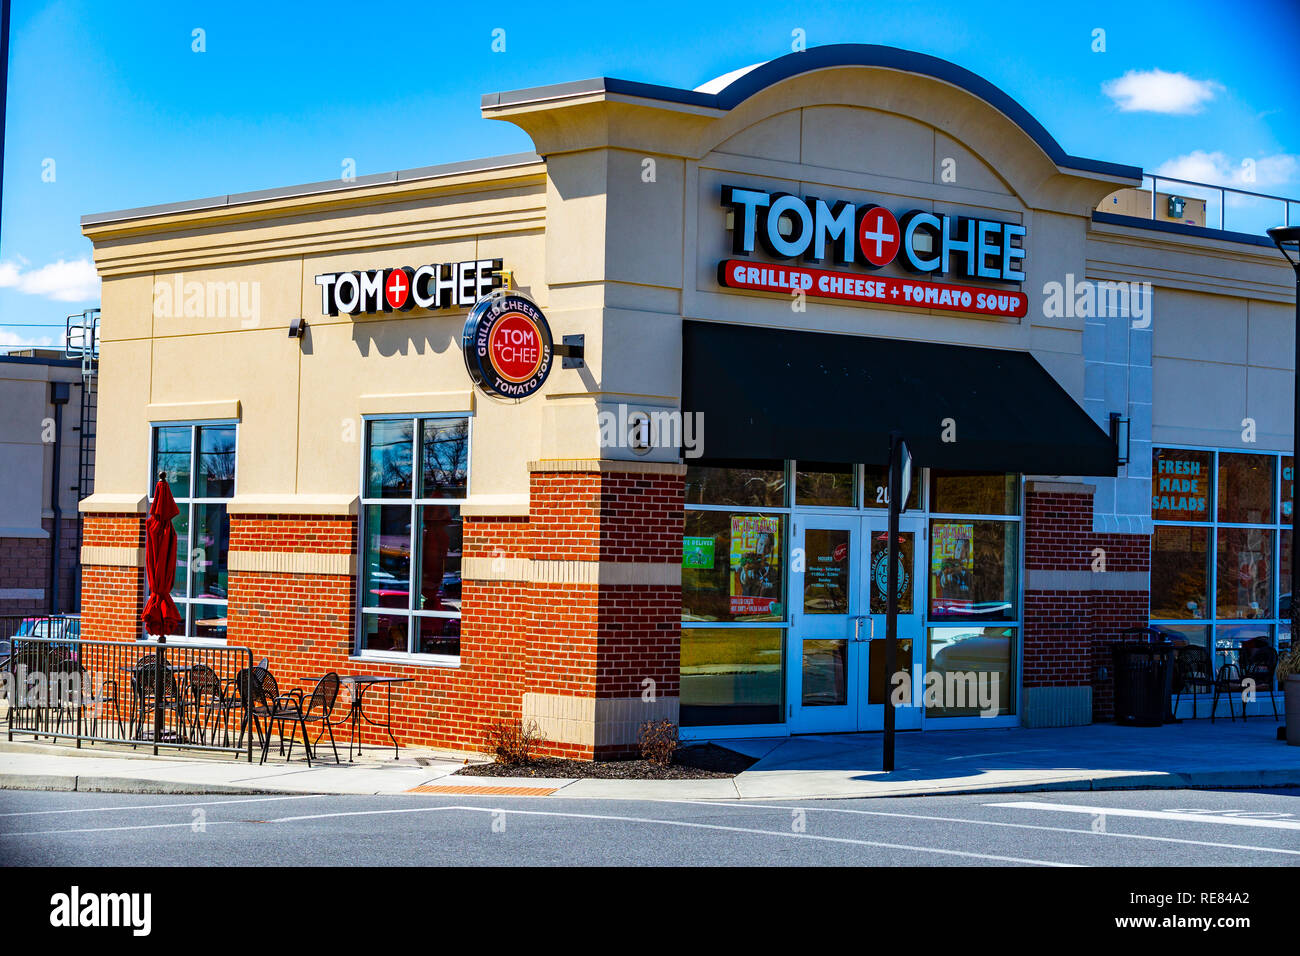 Lancaster, PA, USA - March 5, 2018: Tom and Chee is an American fast food, casual restaurant that was featured on TV's Shark Tank with 15 locations. - Stock Image